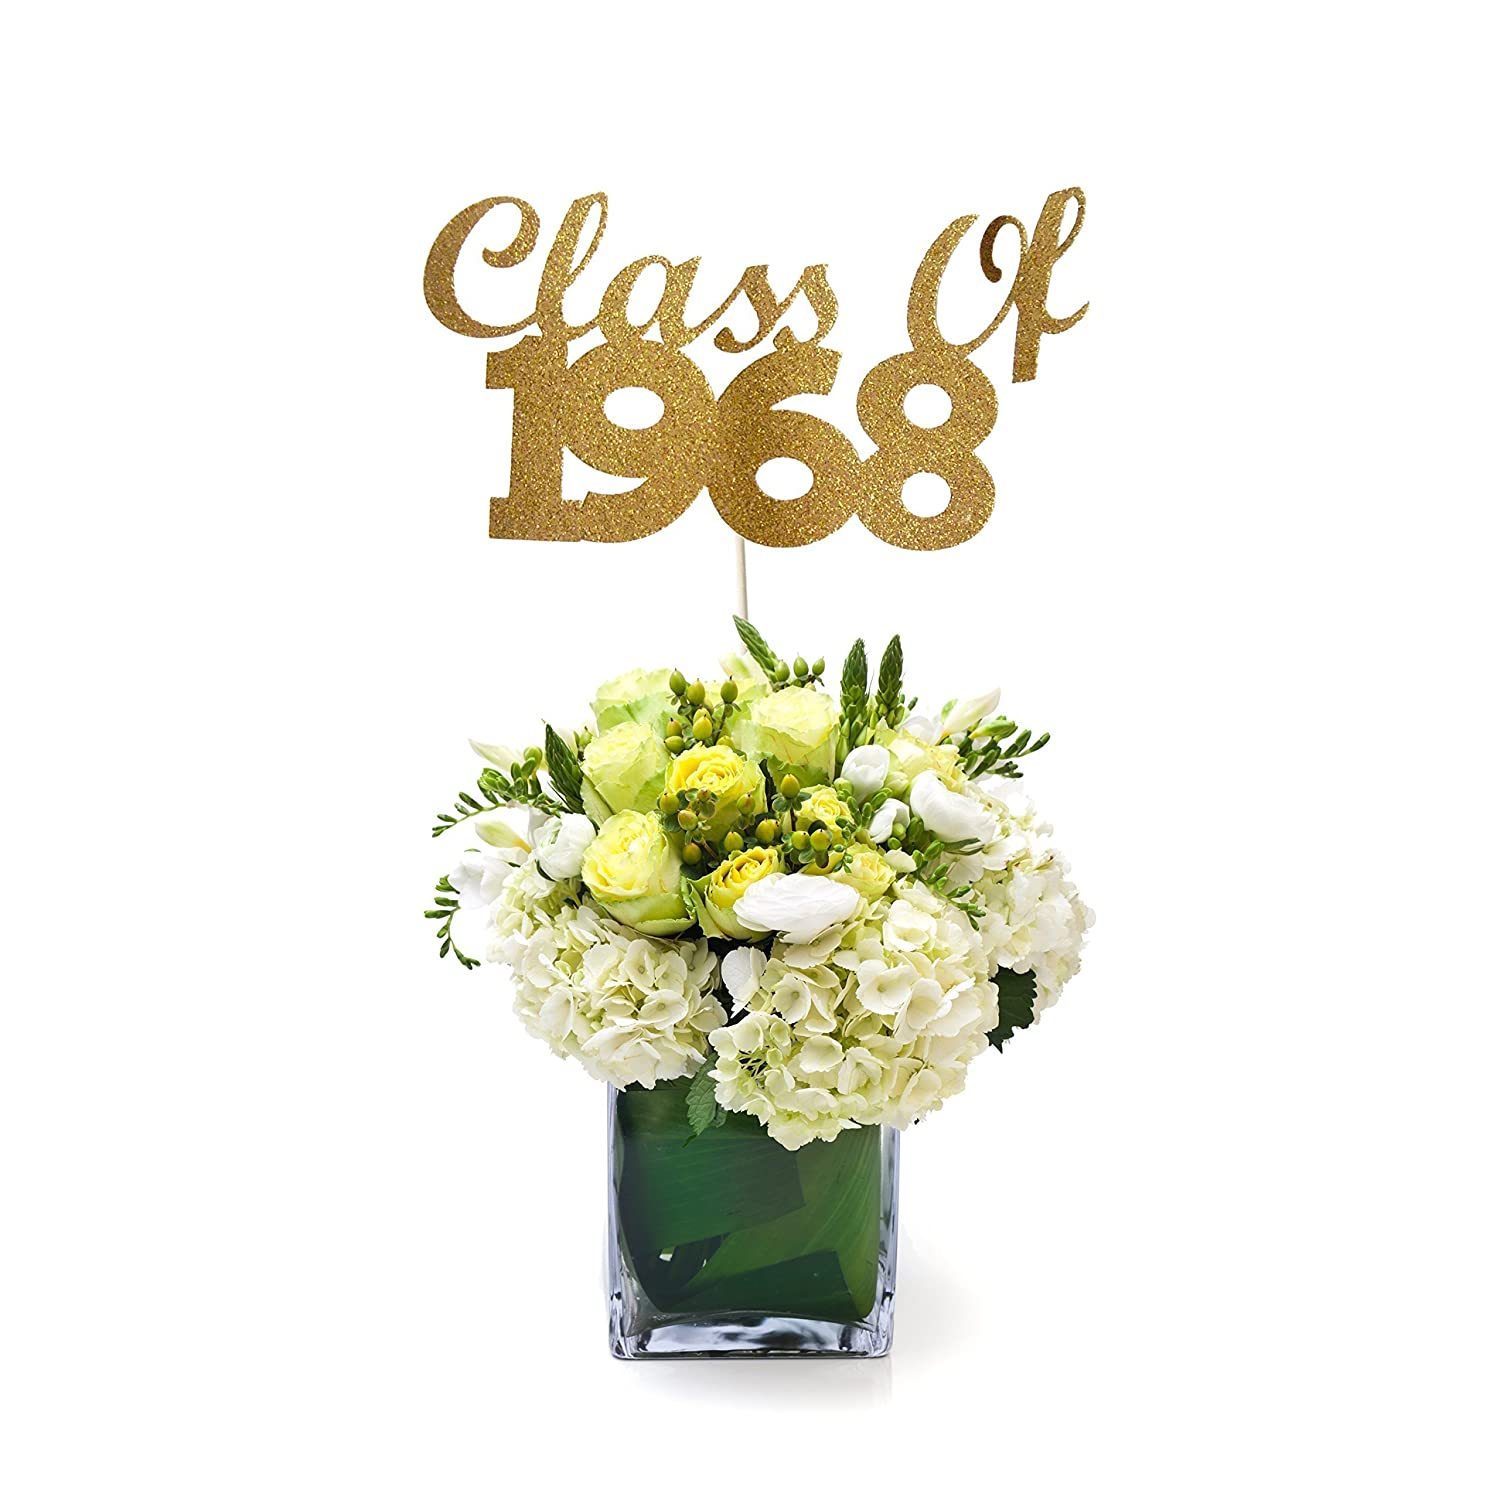 Class of 1968 Graduation Centerpiece Stick, 50th Class Reunion Centerpiece Stick